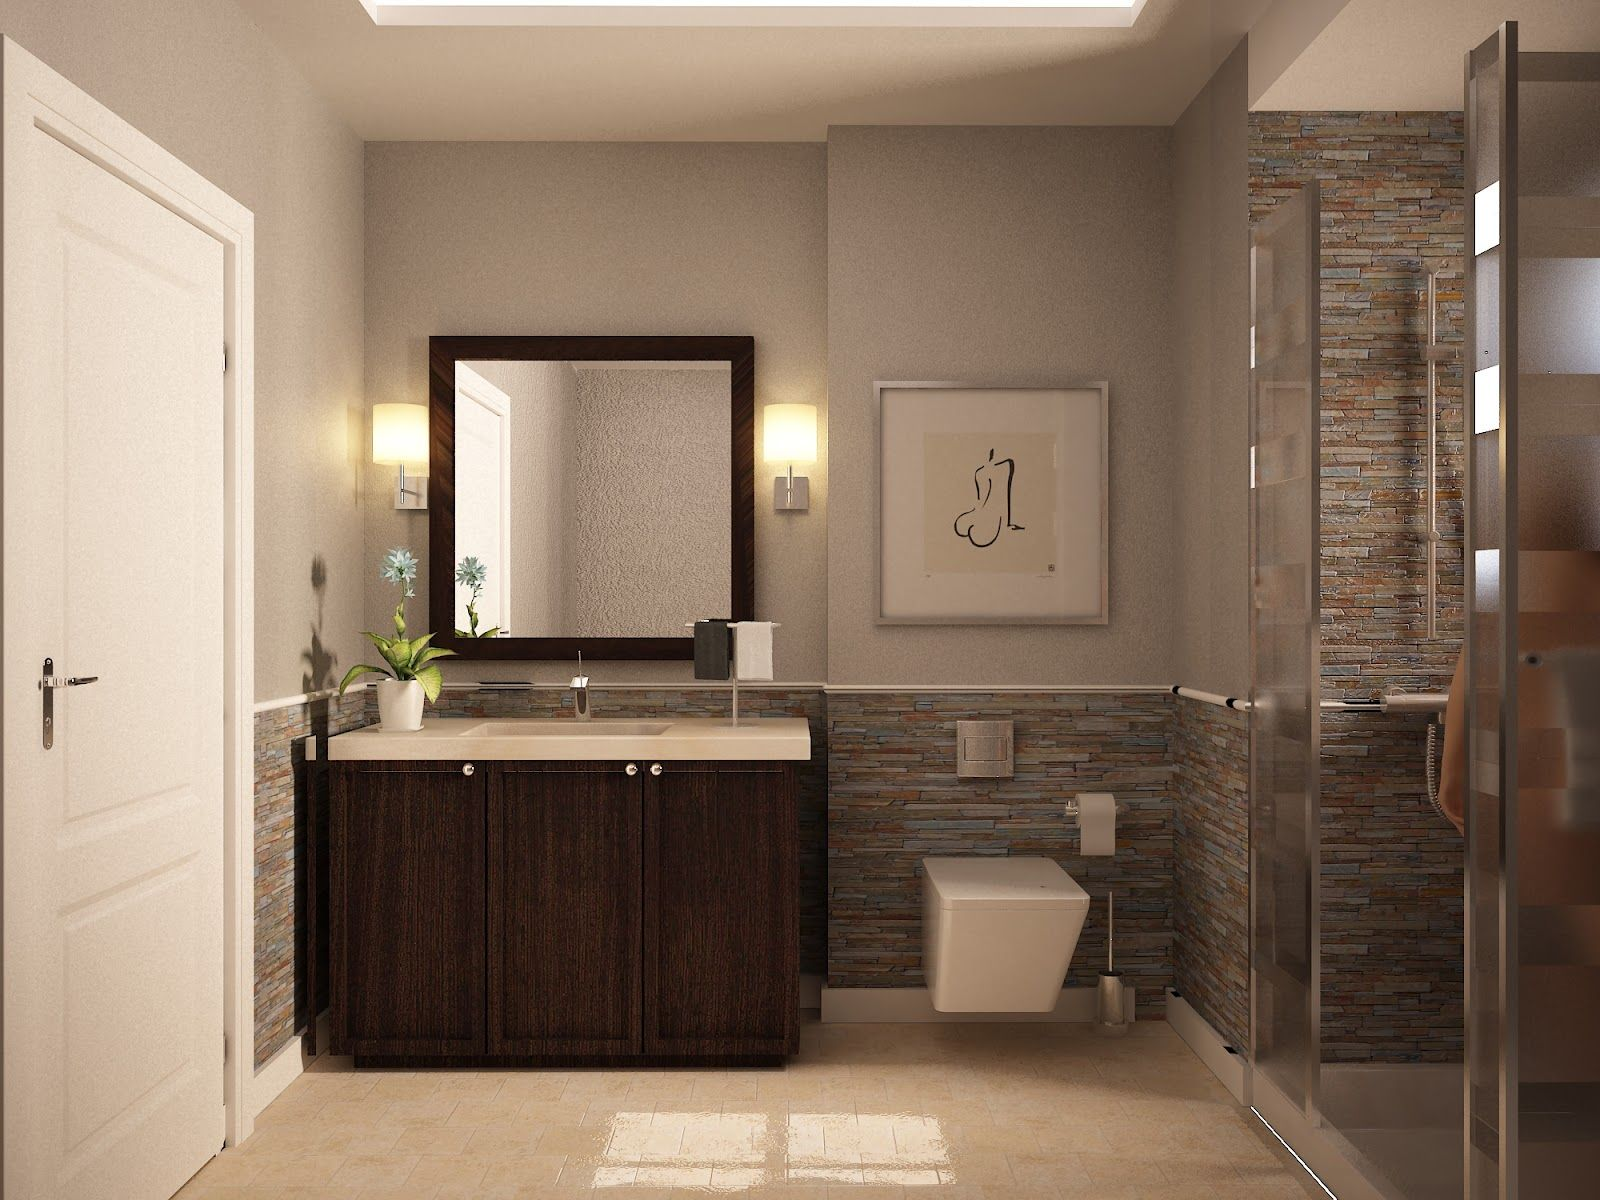 Small Bathroom Design Ideas Color Schemes 10 small bathroom color ideas Bathroom Colors For A Bathroom Decorating Interior Homes Compact Bathroom Colors For A Small Bathroom Fascinating Bathroom Colors Bathroom Bathroom Colors